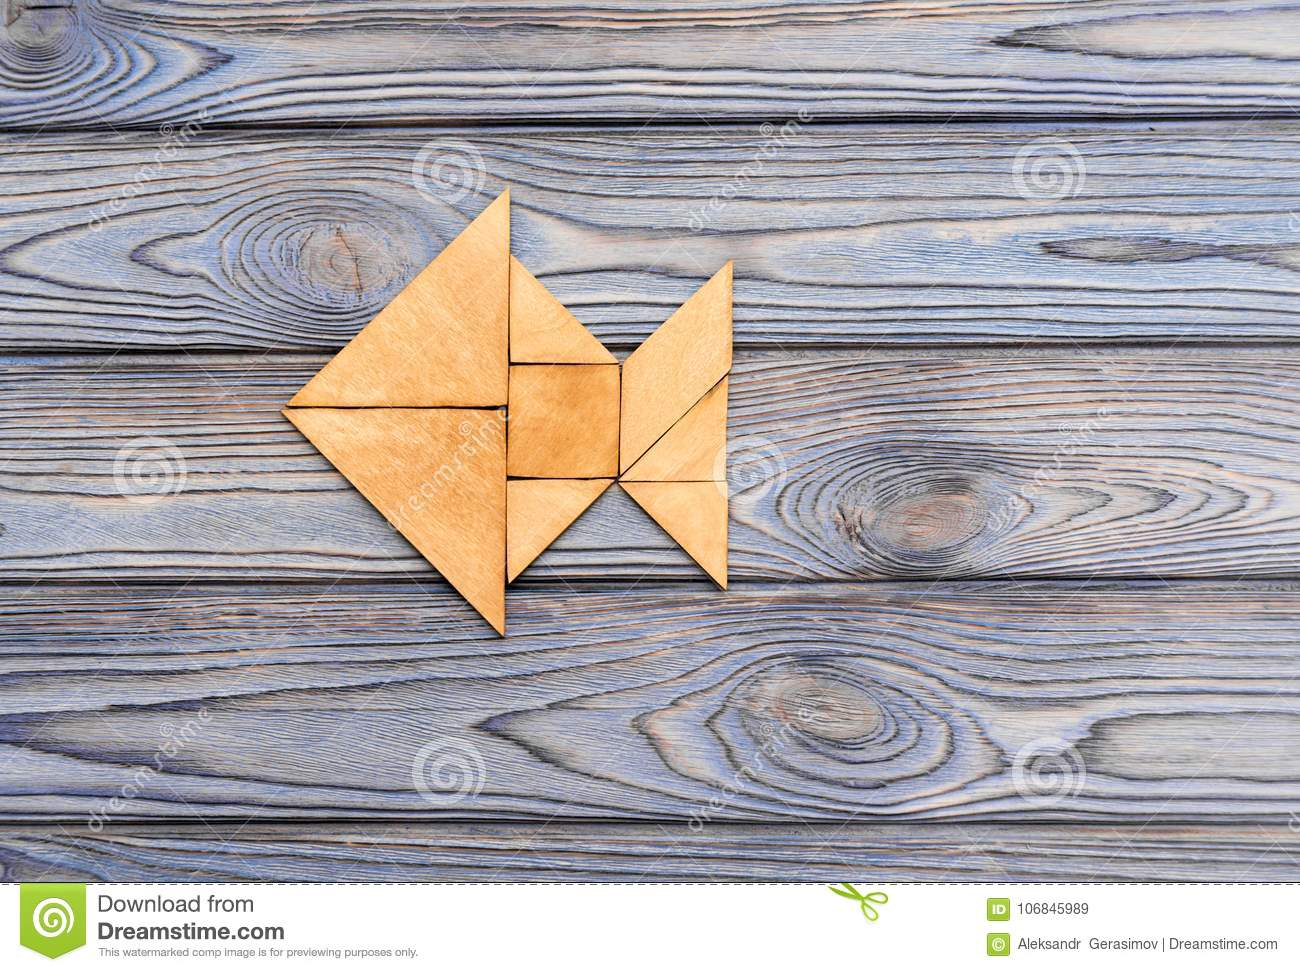 Download Figure Of Fish From Wooden Puzzles Stock Image - Image of creative, education: 106845989